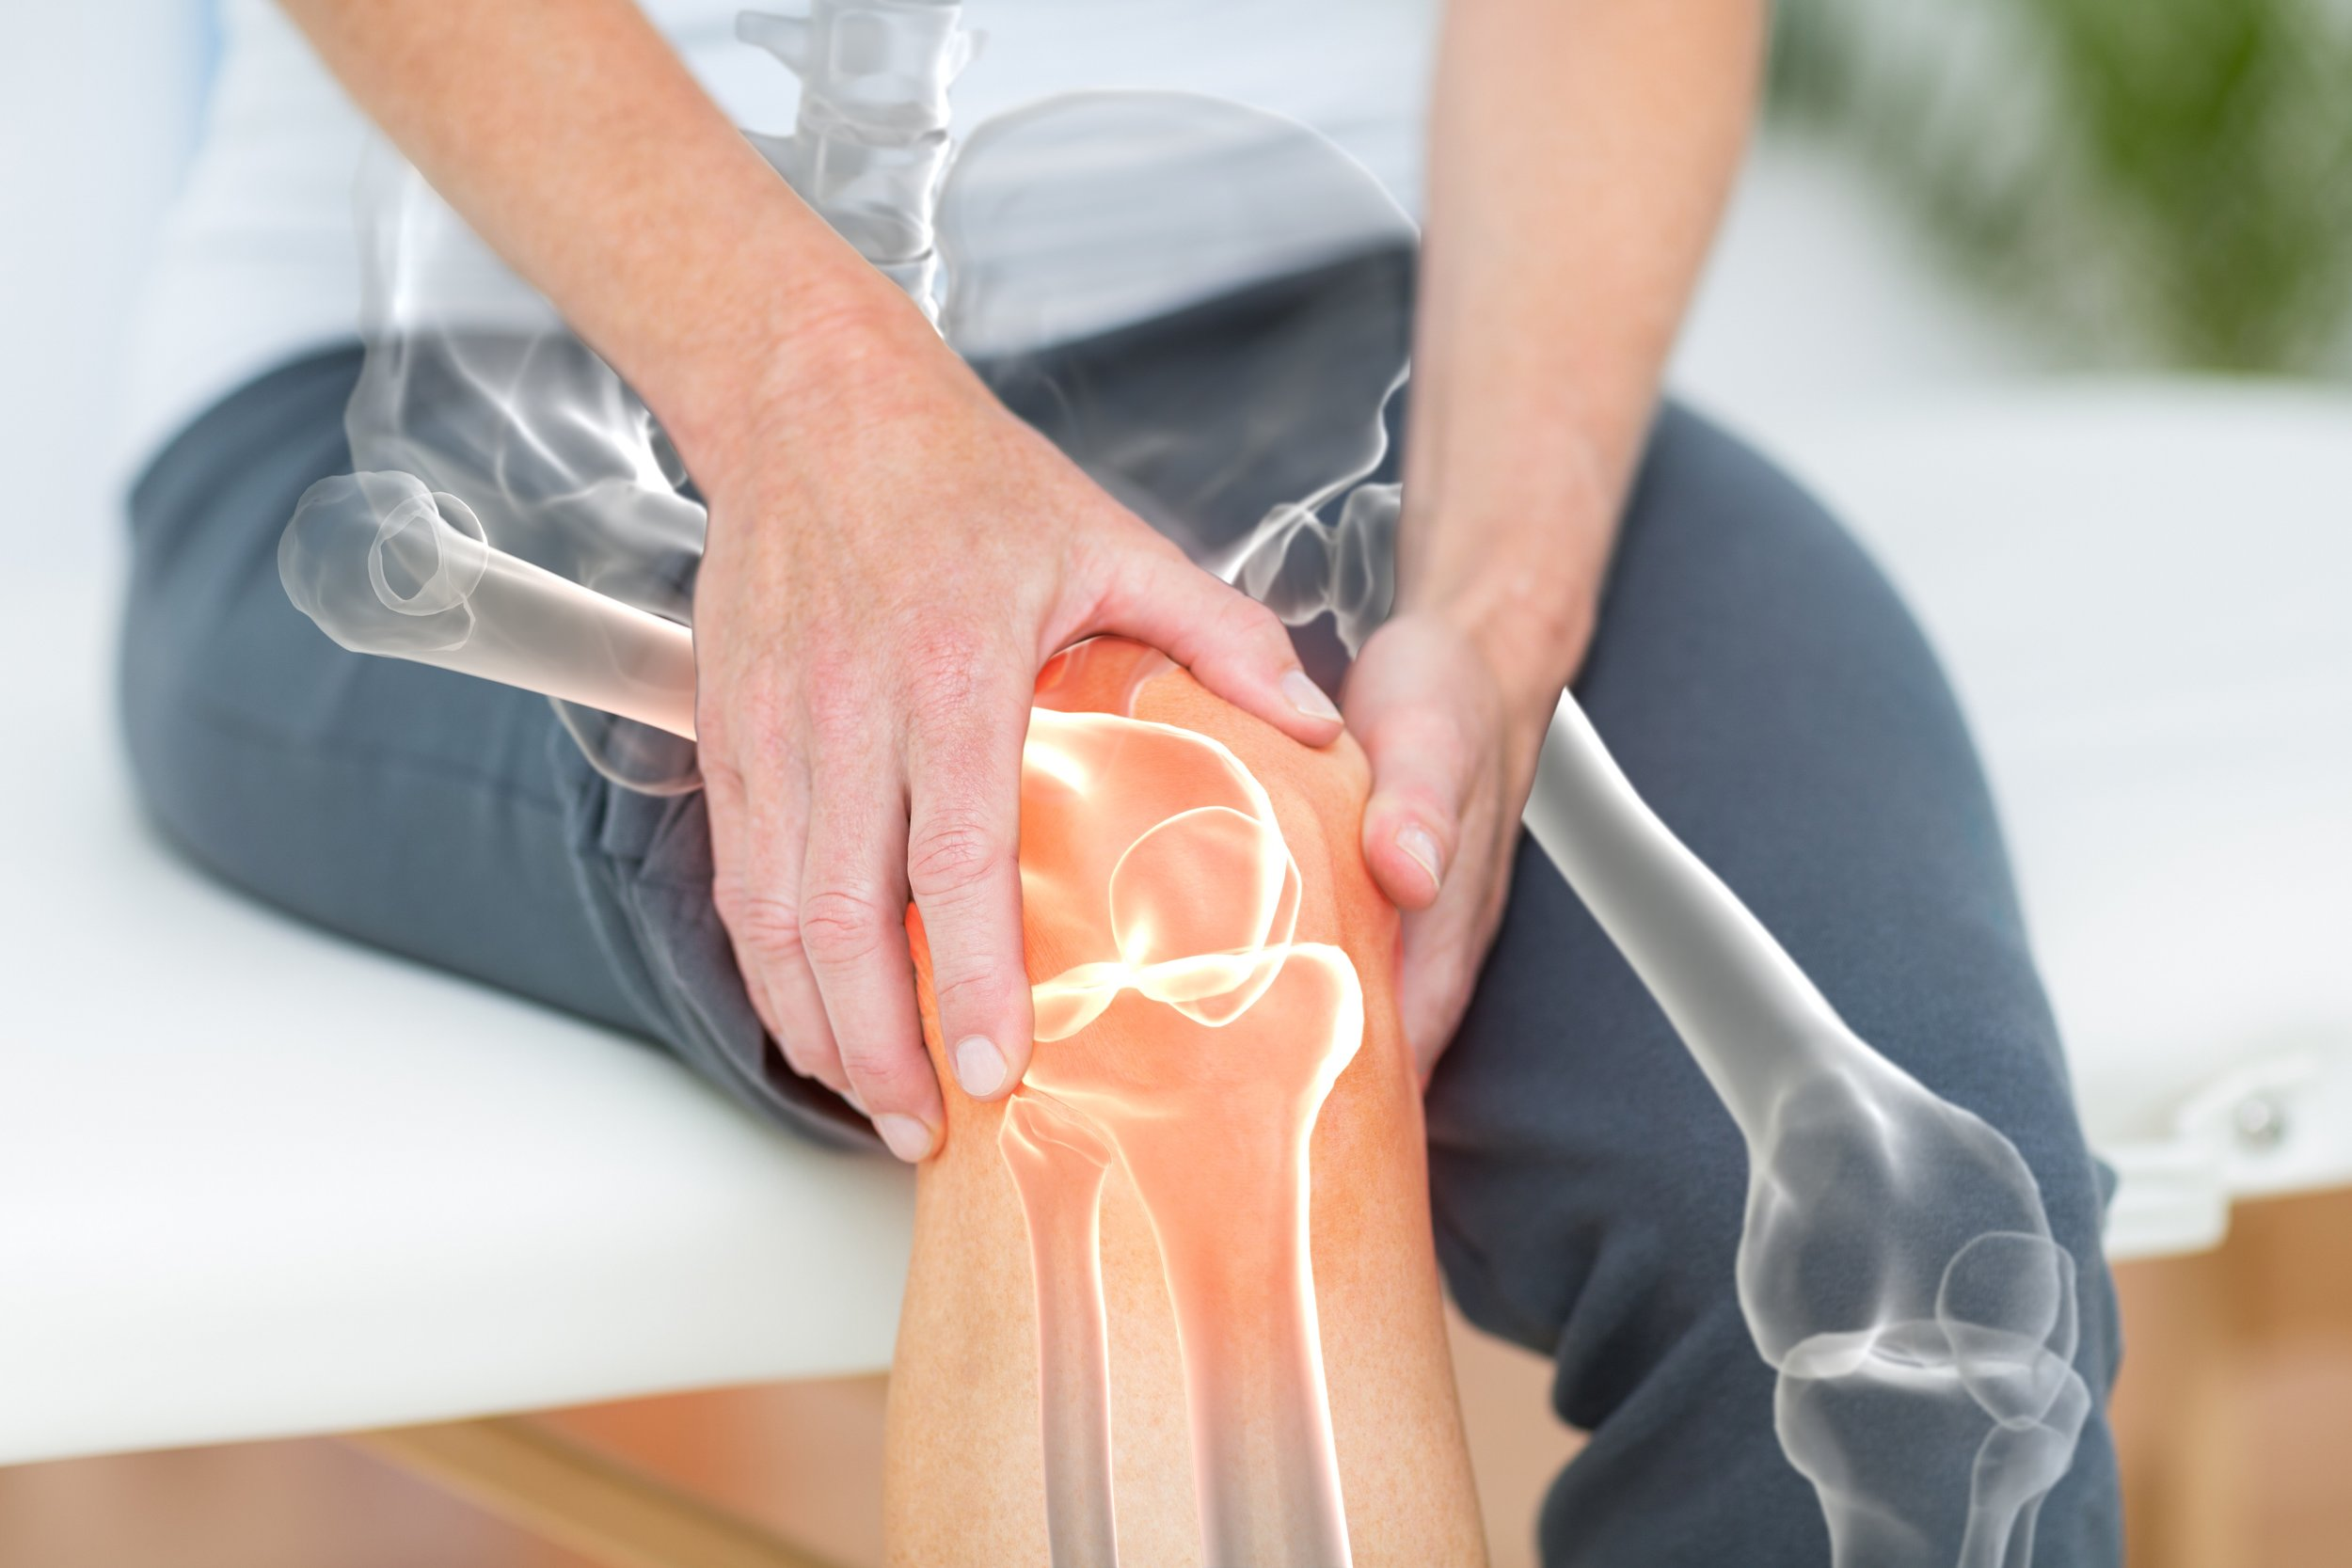 Copy of Mid section of man suffering with knee pain